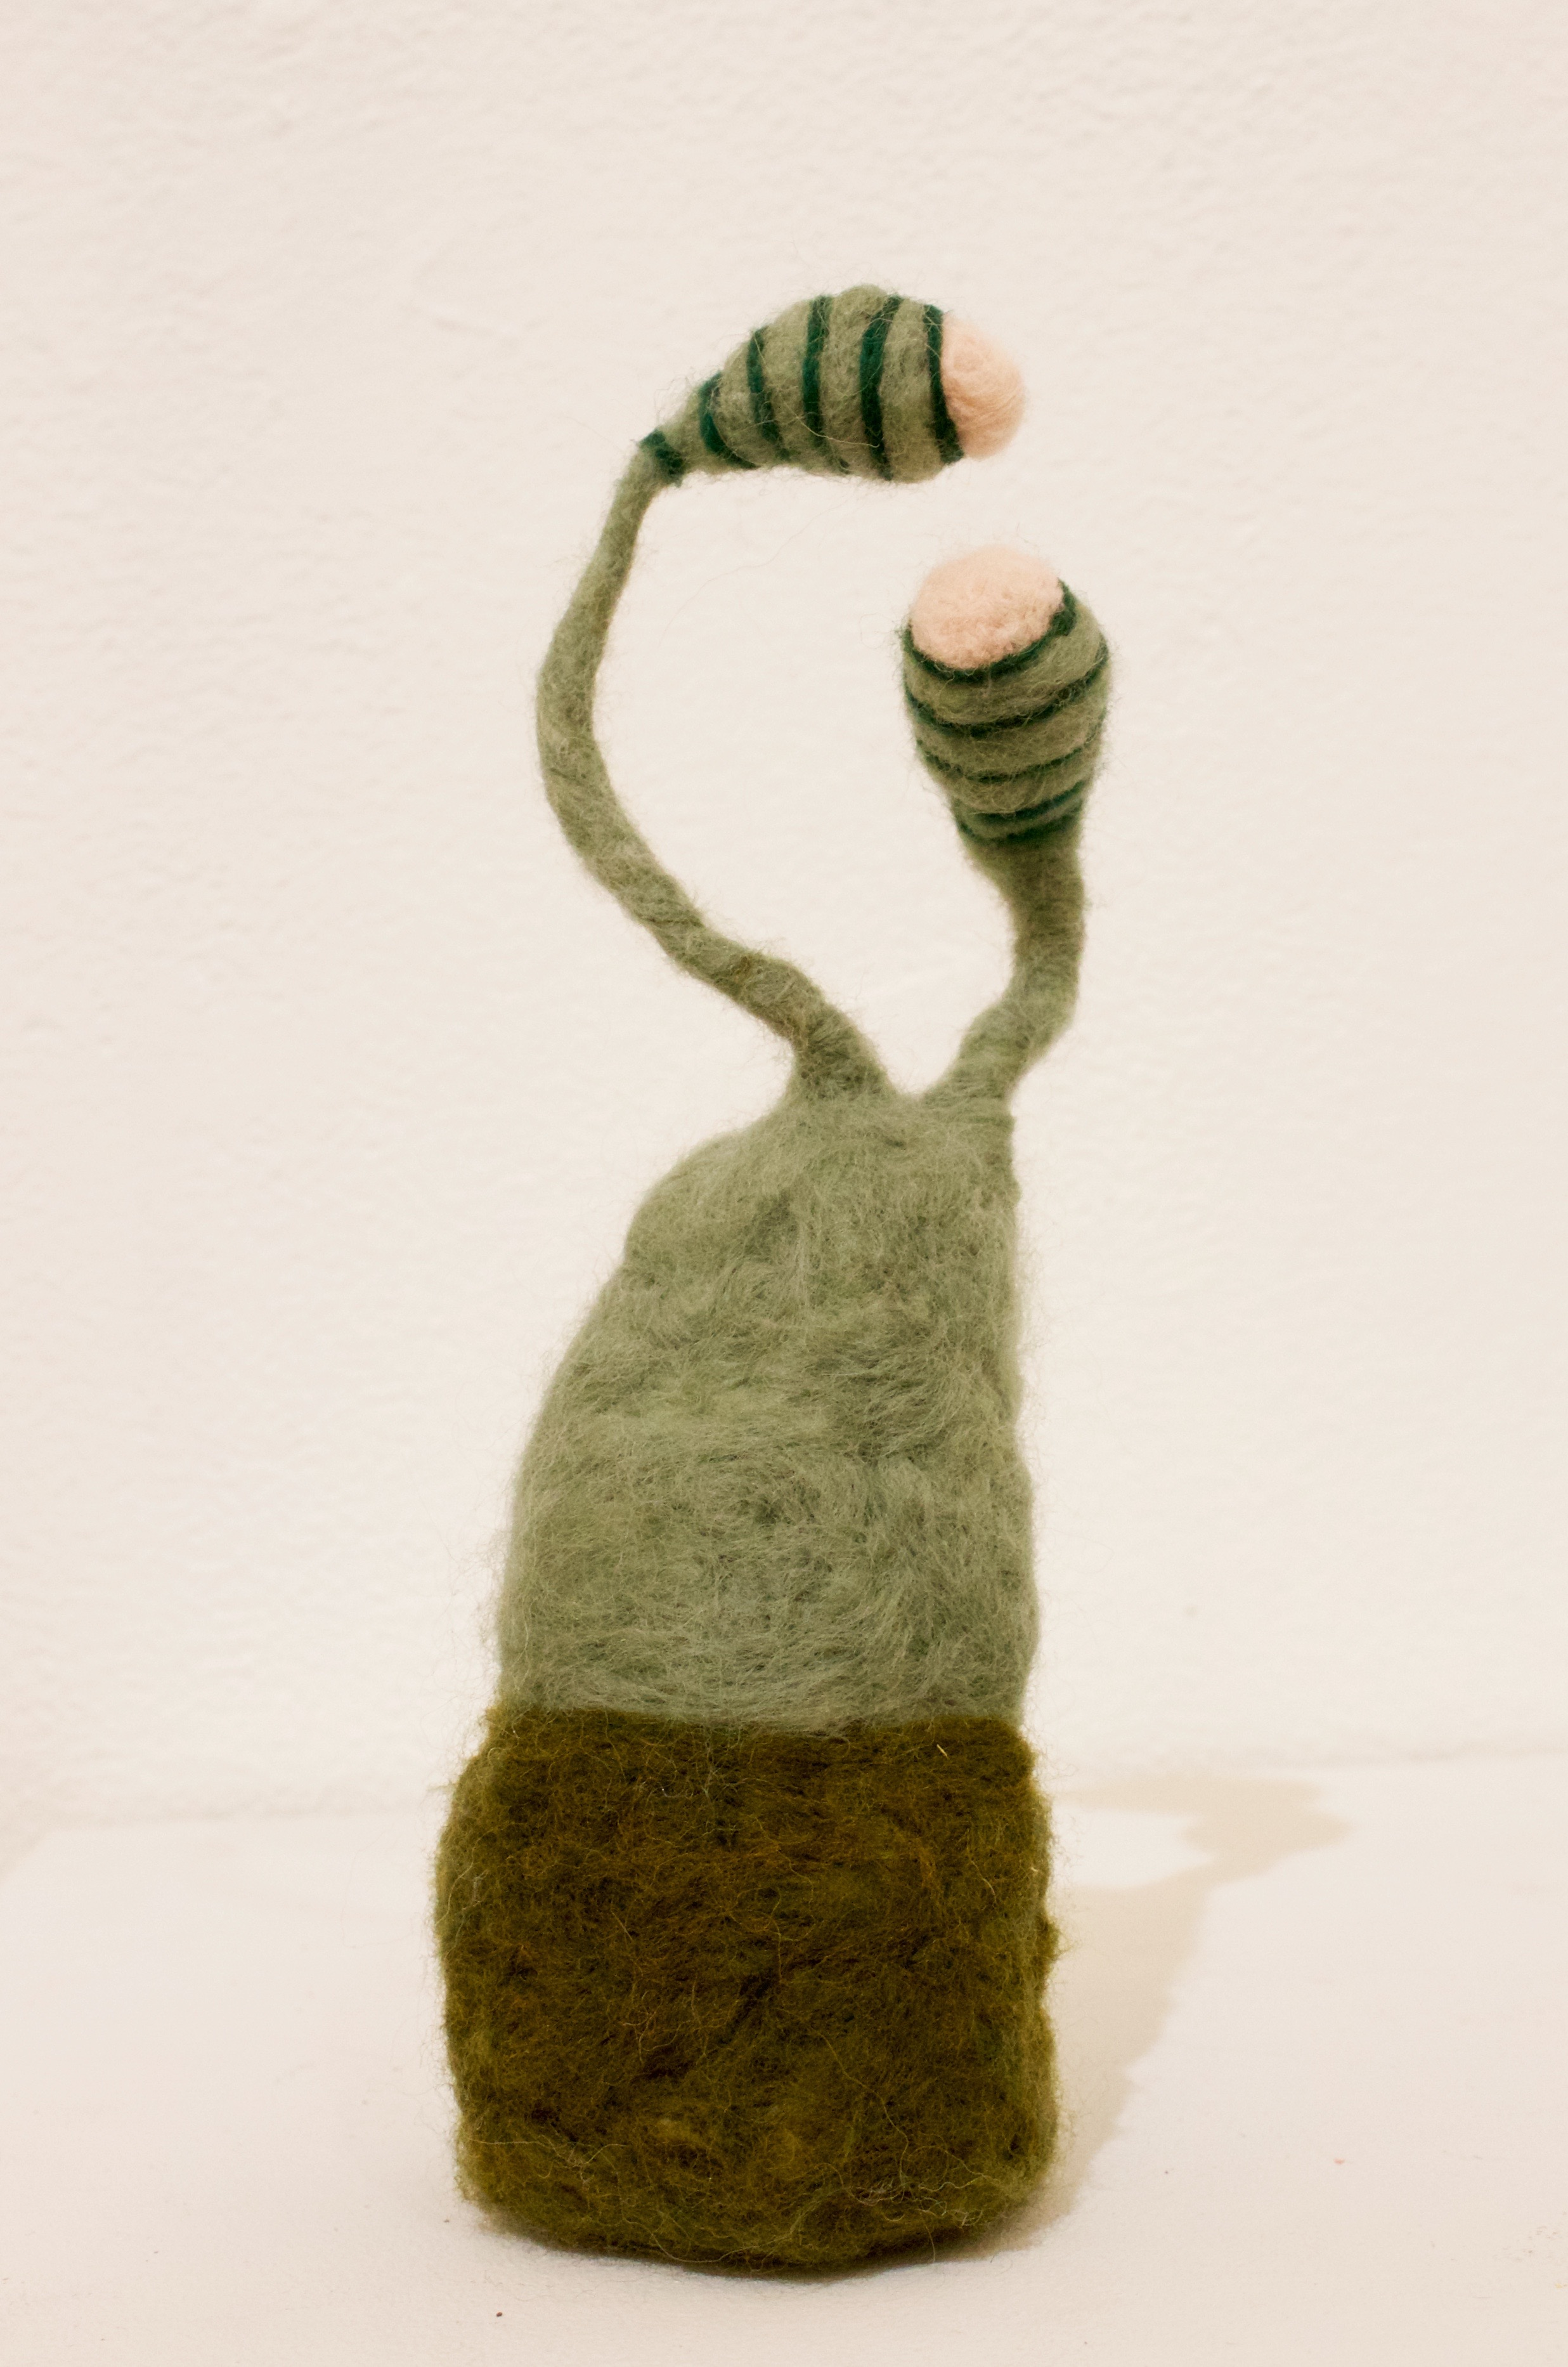 James (2019)  Wool roving, wire, polyfil